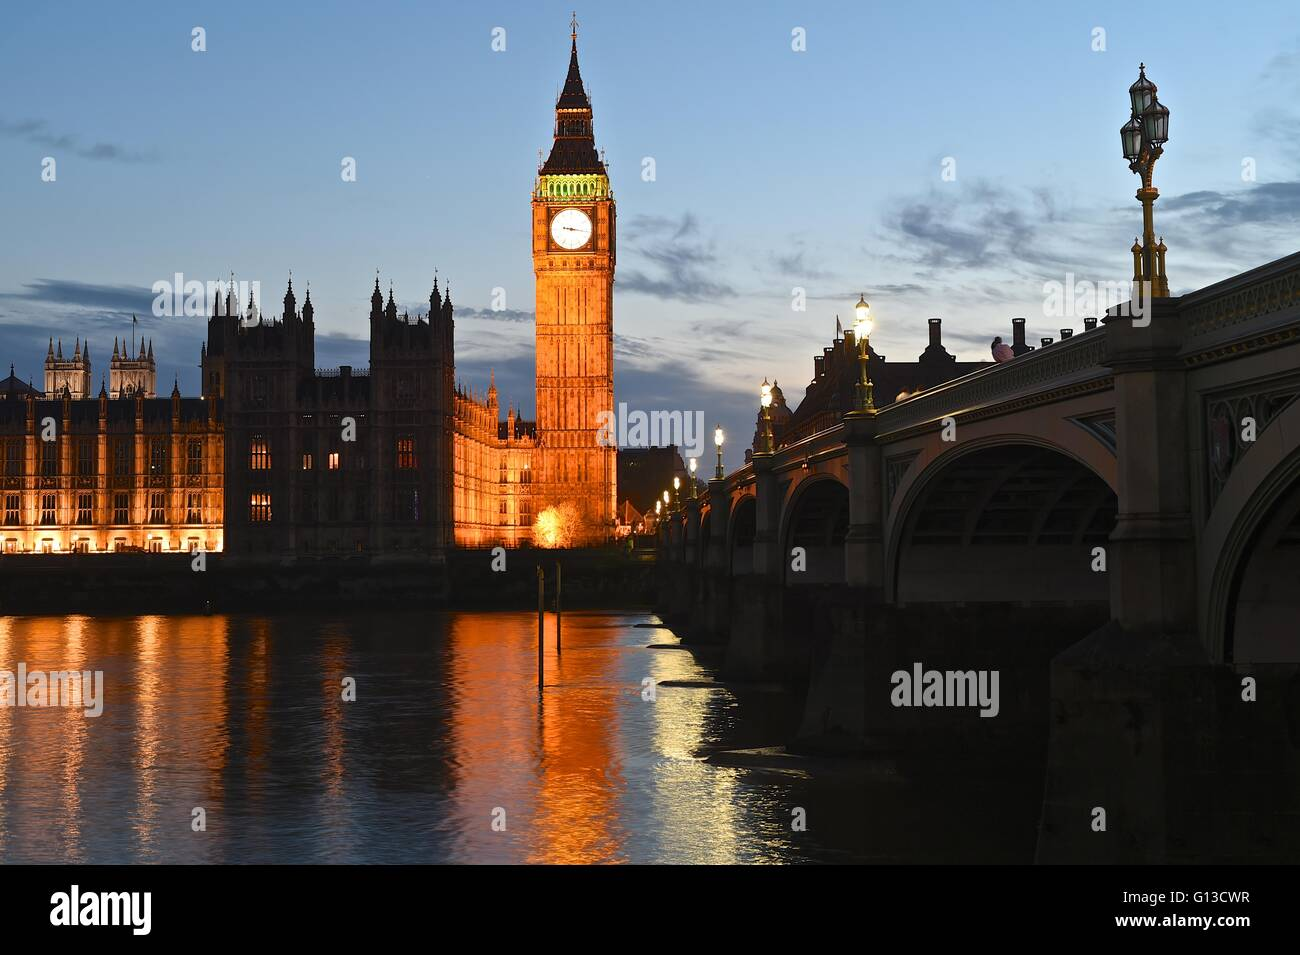 Big Ben and Westminster Bridge over looking the River Thames - Stock Image